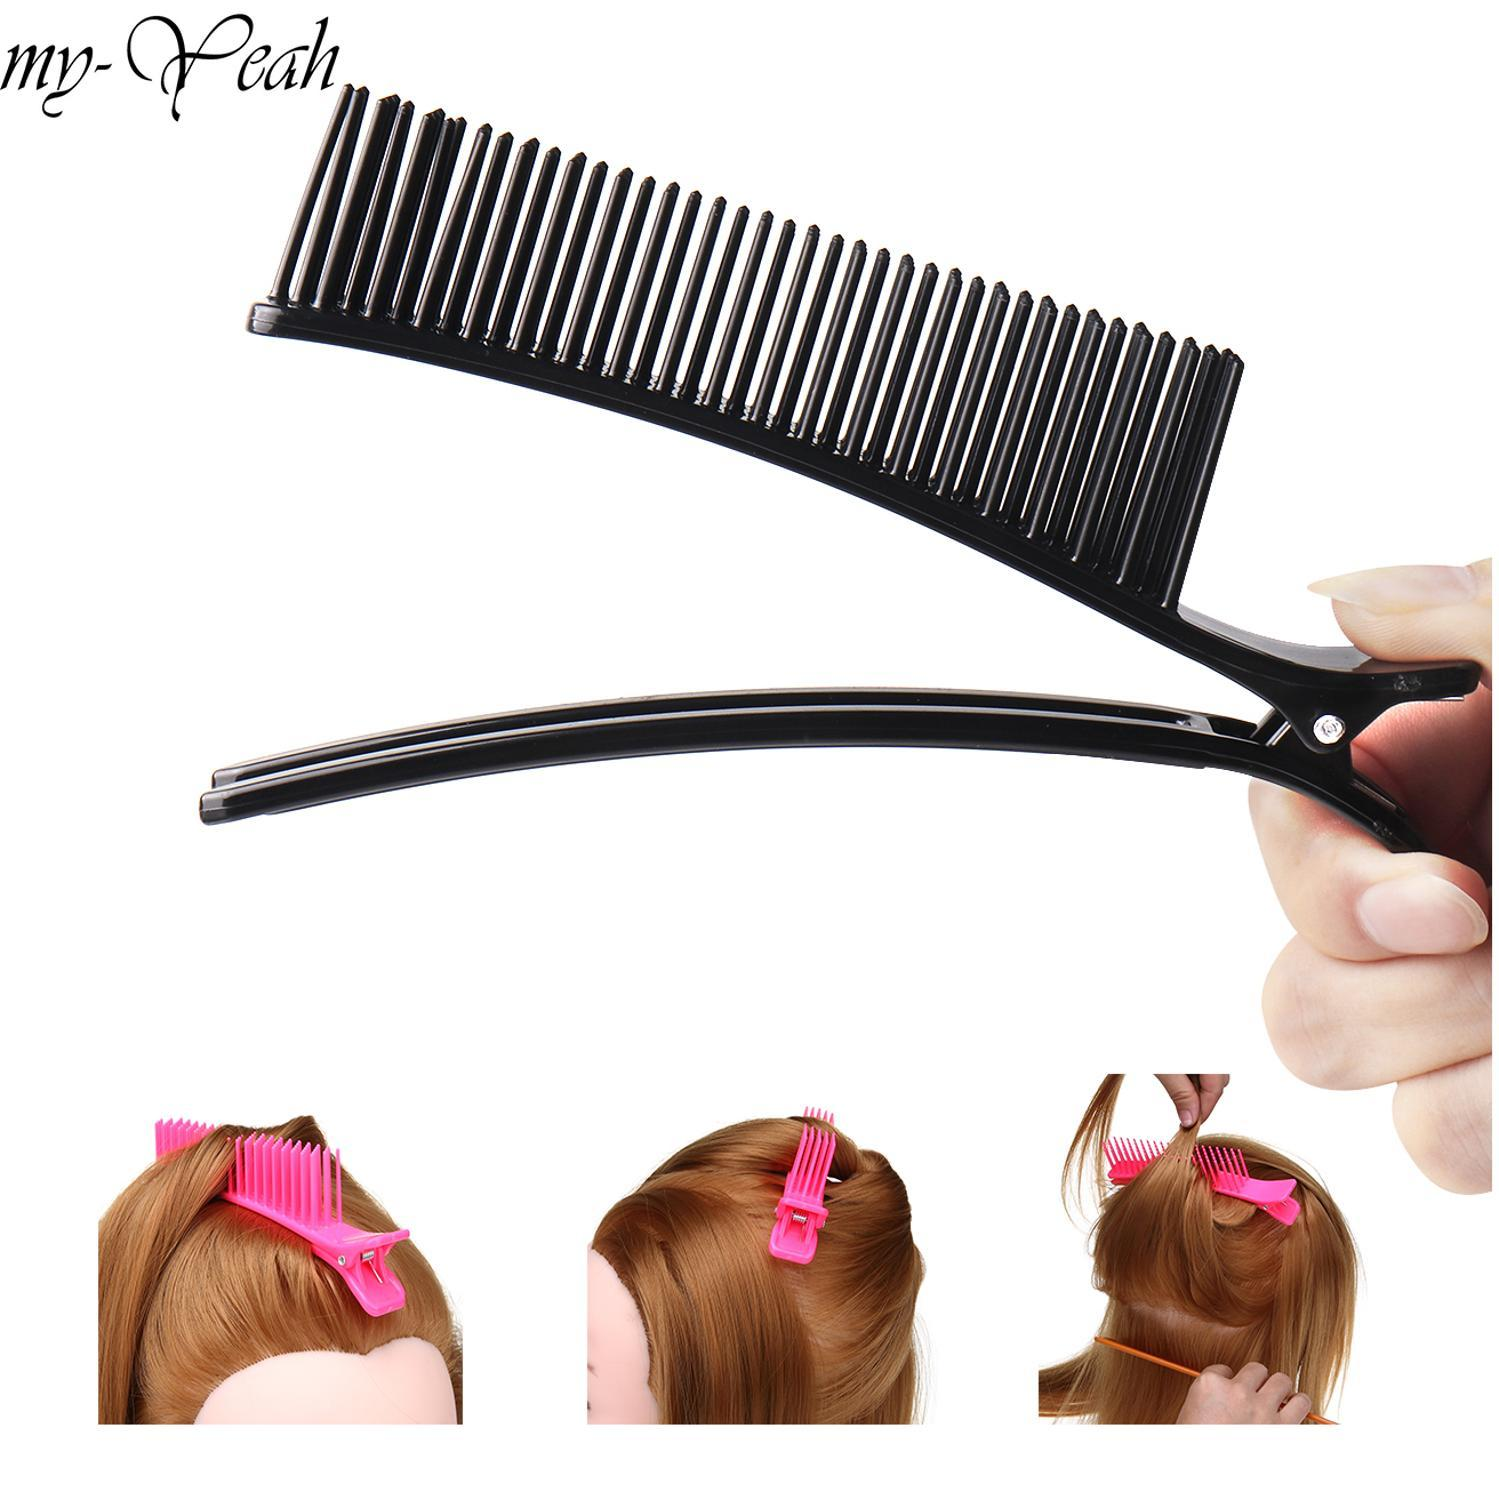 Professional Hair Grip Hairdressing Sectioning Cutting Clamps Clips Comb Salon Drying Perm Dyeing Hairstyling Tool